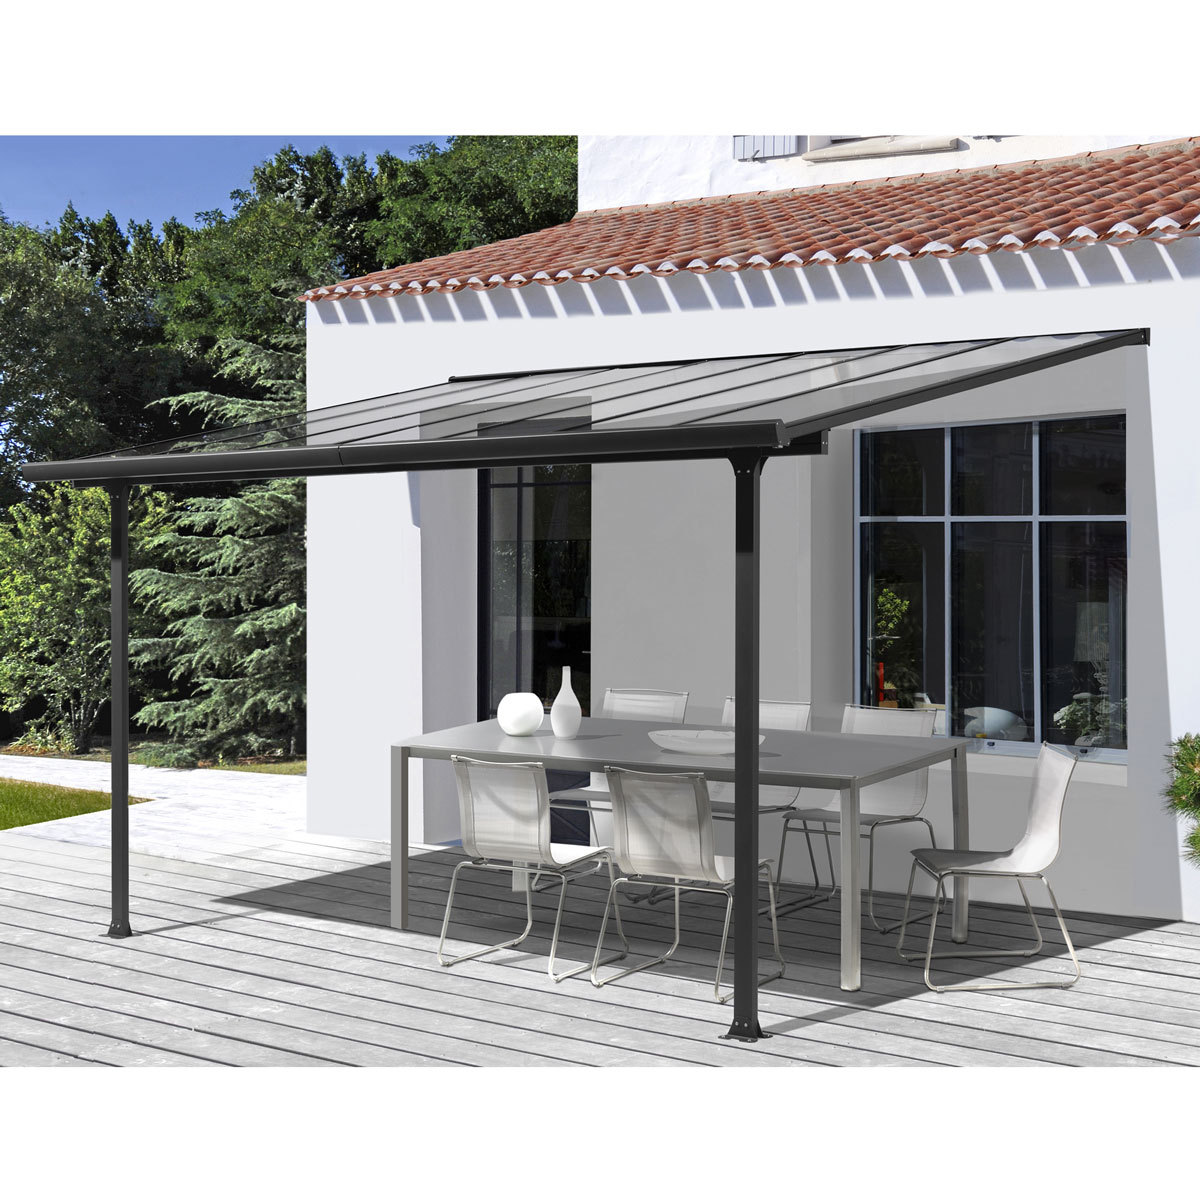 pergola en aluminium et polycarbonate 3x3 m abrirama tt3030al abrirama abris de jardin en bois. Black Bedroom Furniture Sets. Home Design Ideas